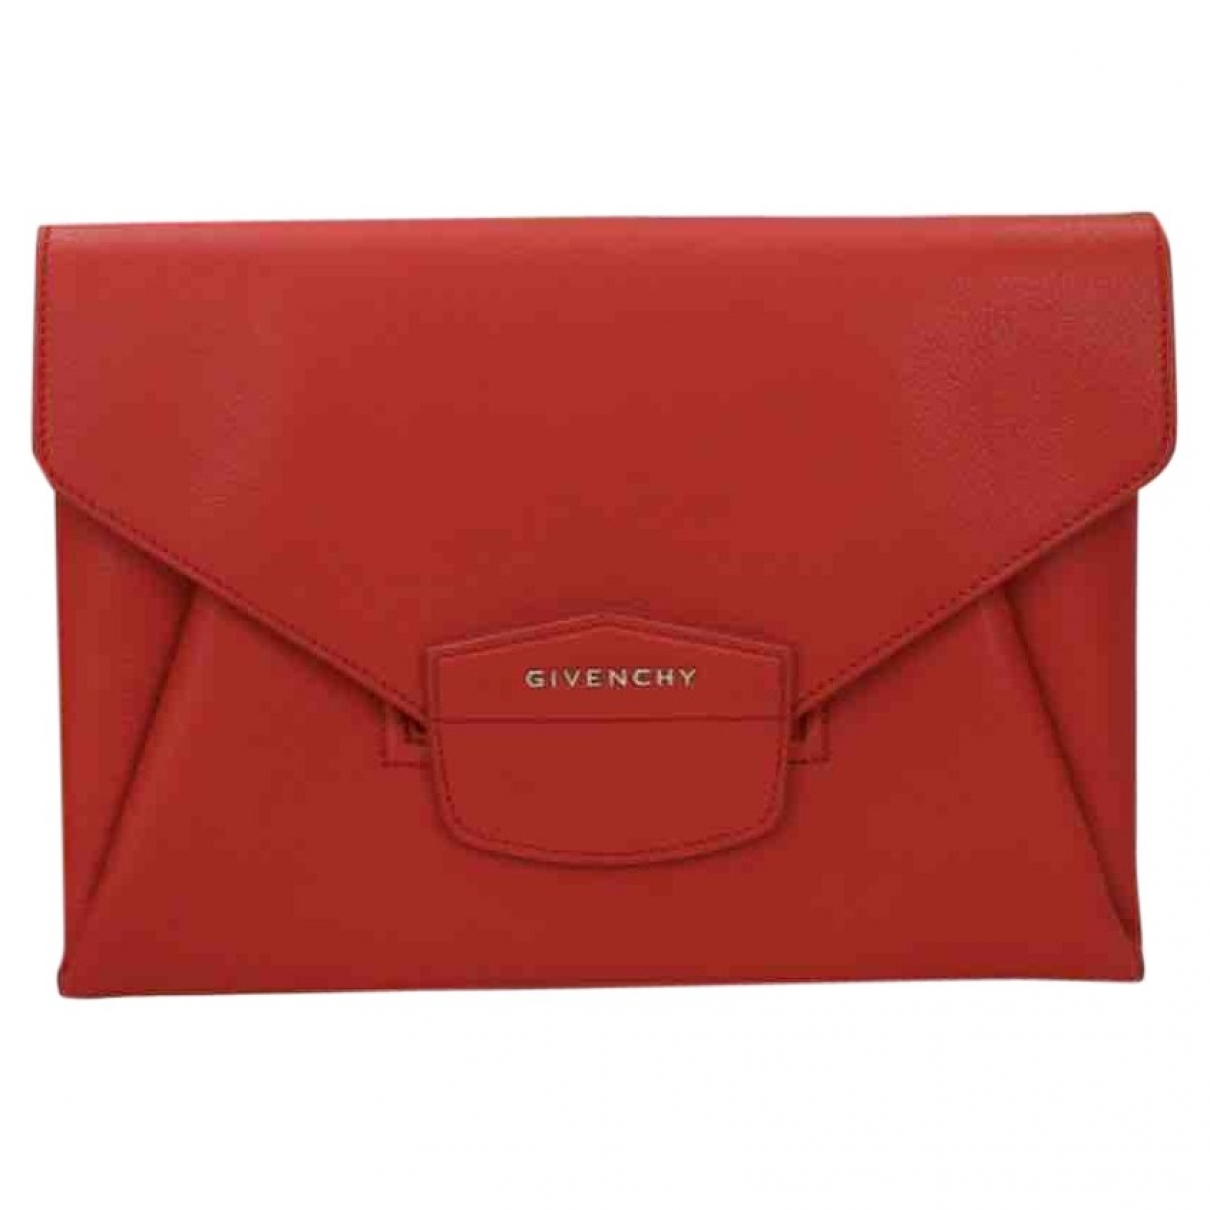 Givenchy Nightingale Red Patent leather Clutch bag for Women \N